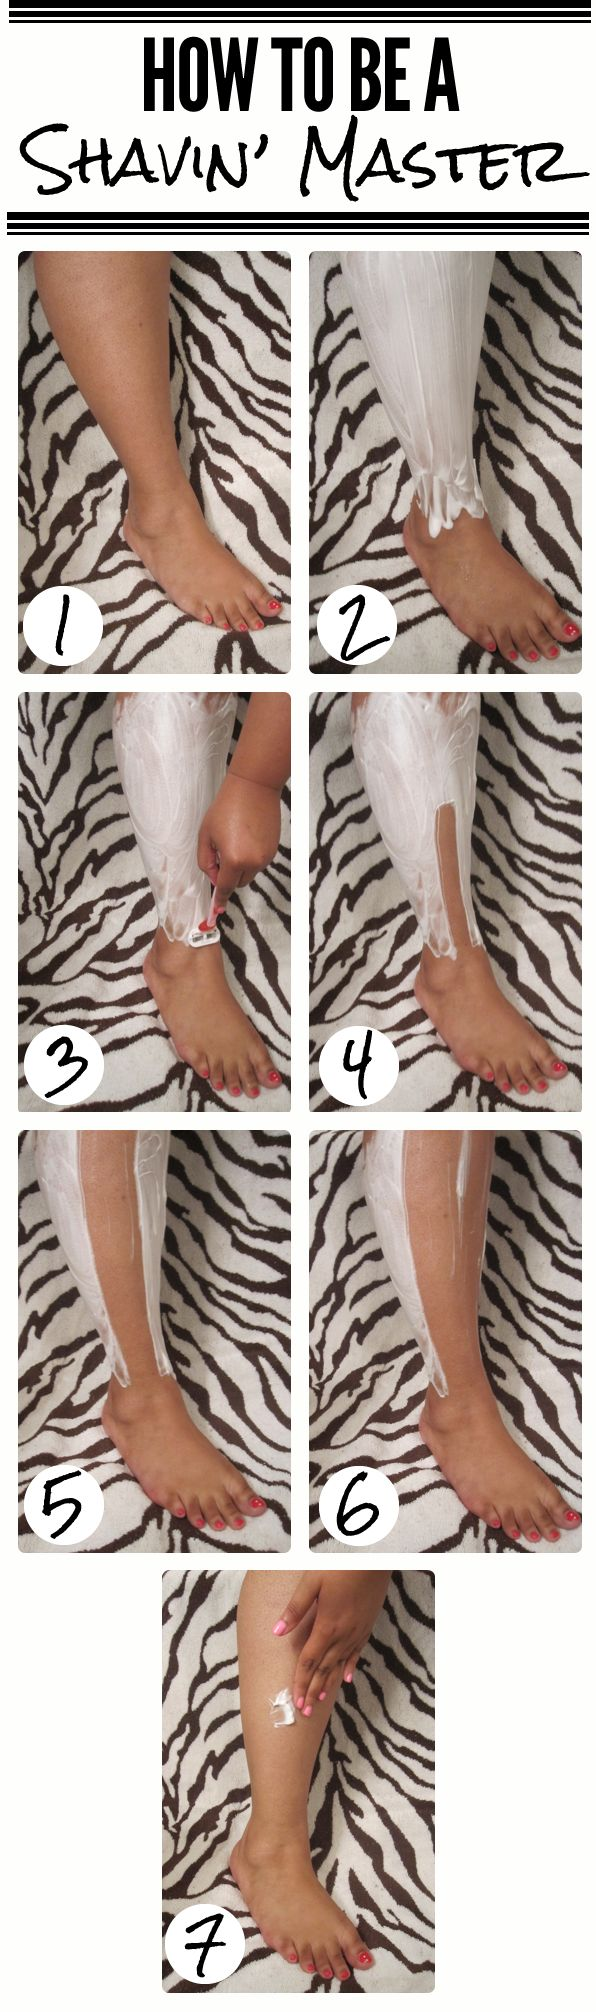 A Few Useful Tips On Shaving Your Legs